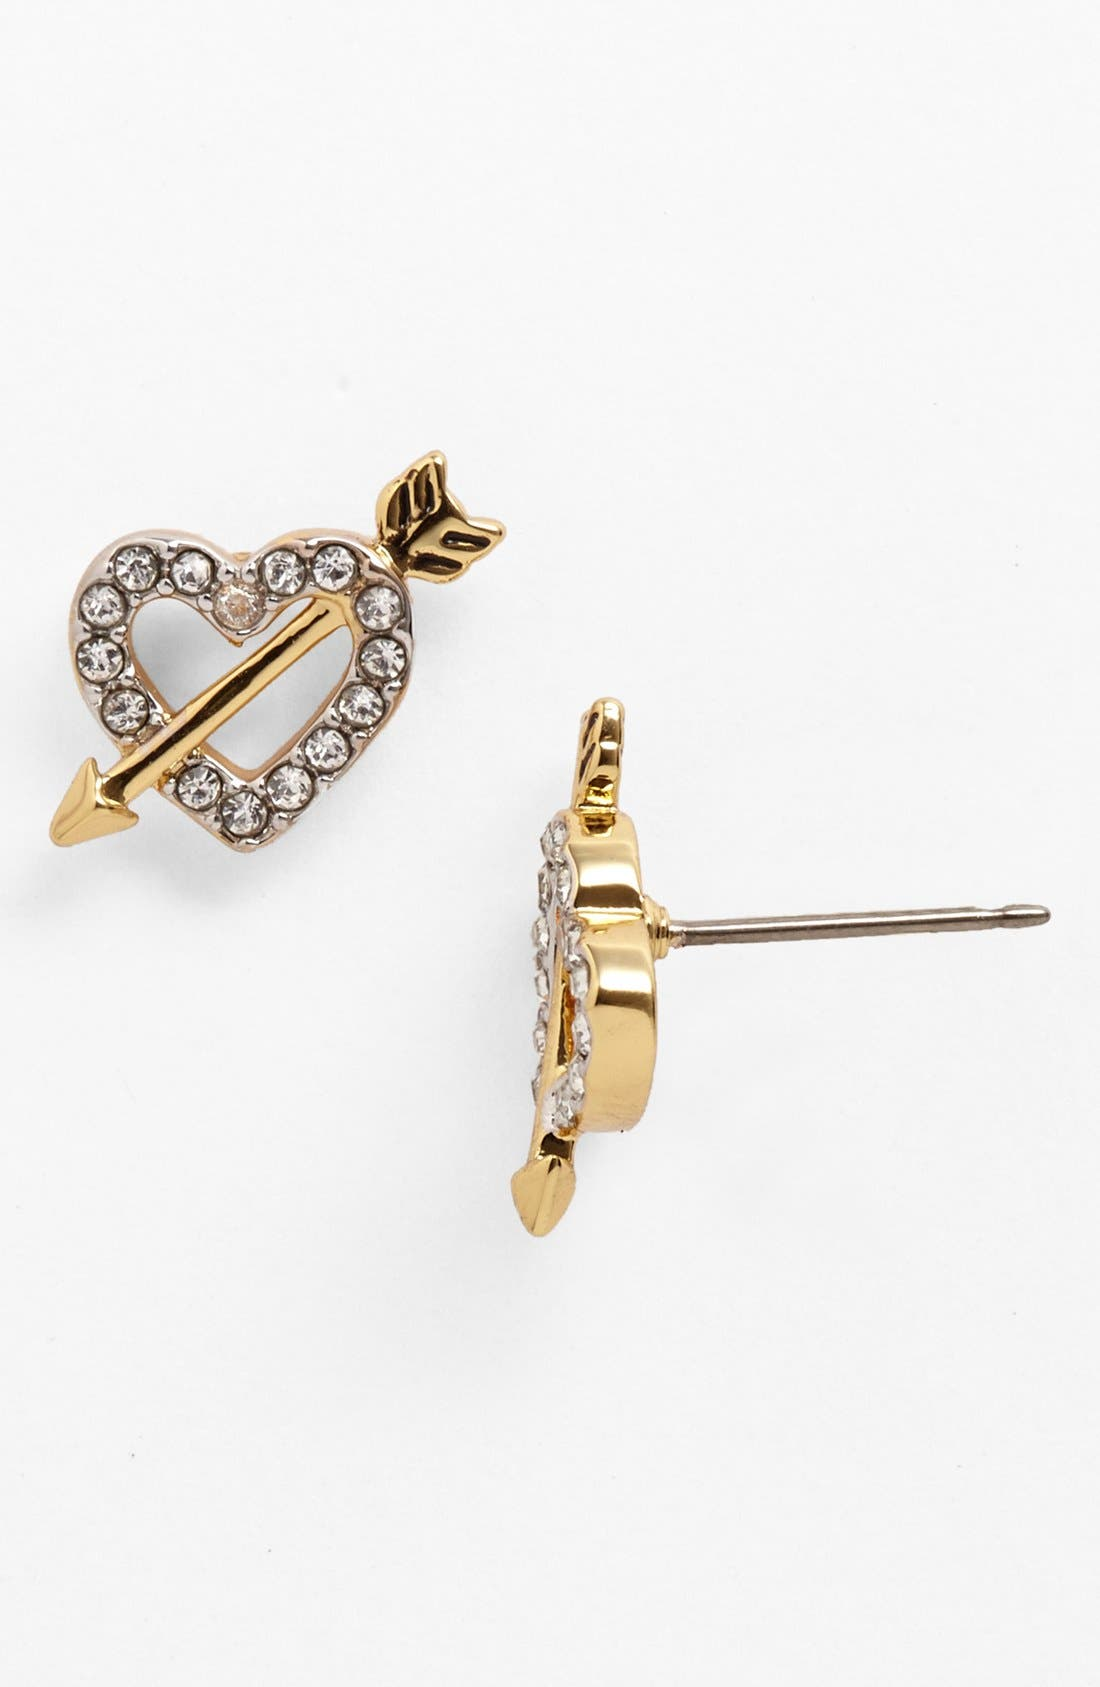 Main Image - Juicy Couture 'Juicy at Heart' Heart & Arrow Stud Earrings